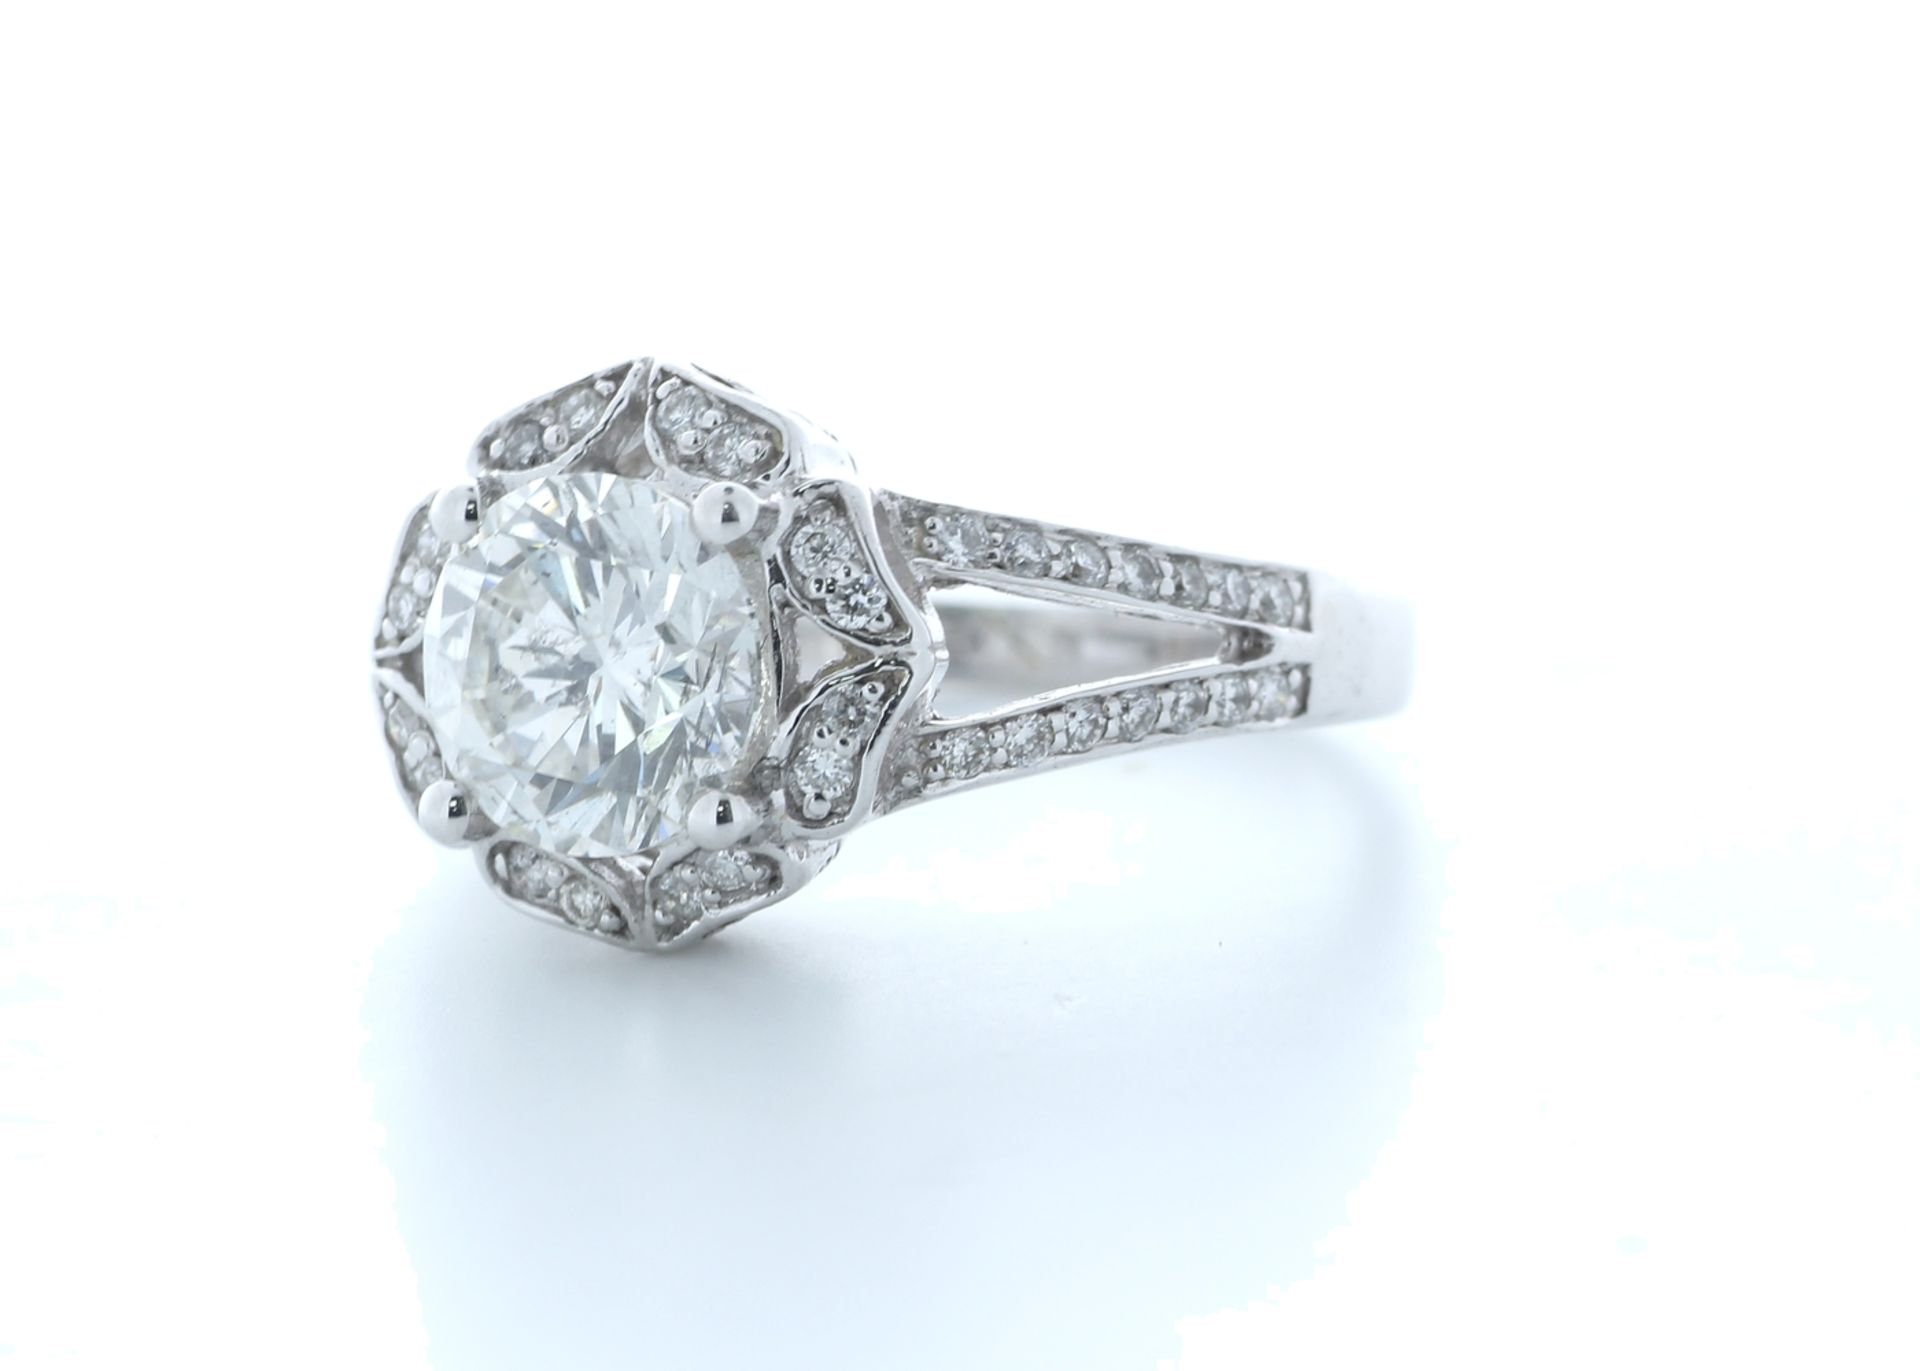 18ct White Gold Single Stone With Halo Setting Ring 2.06 (1.66) Carats - Valued by IDI £36,000. - Image 2 of 5